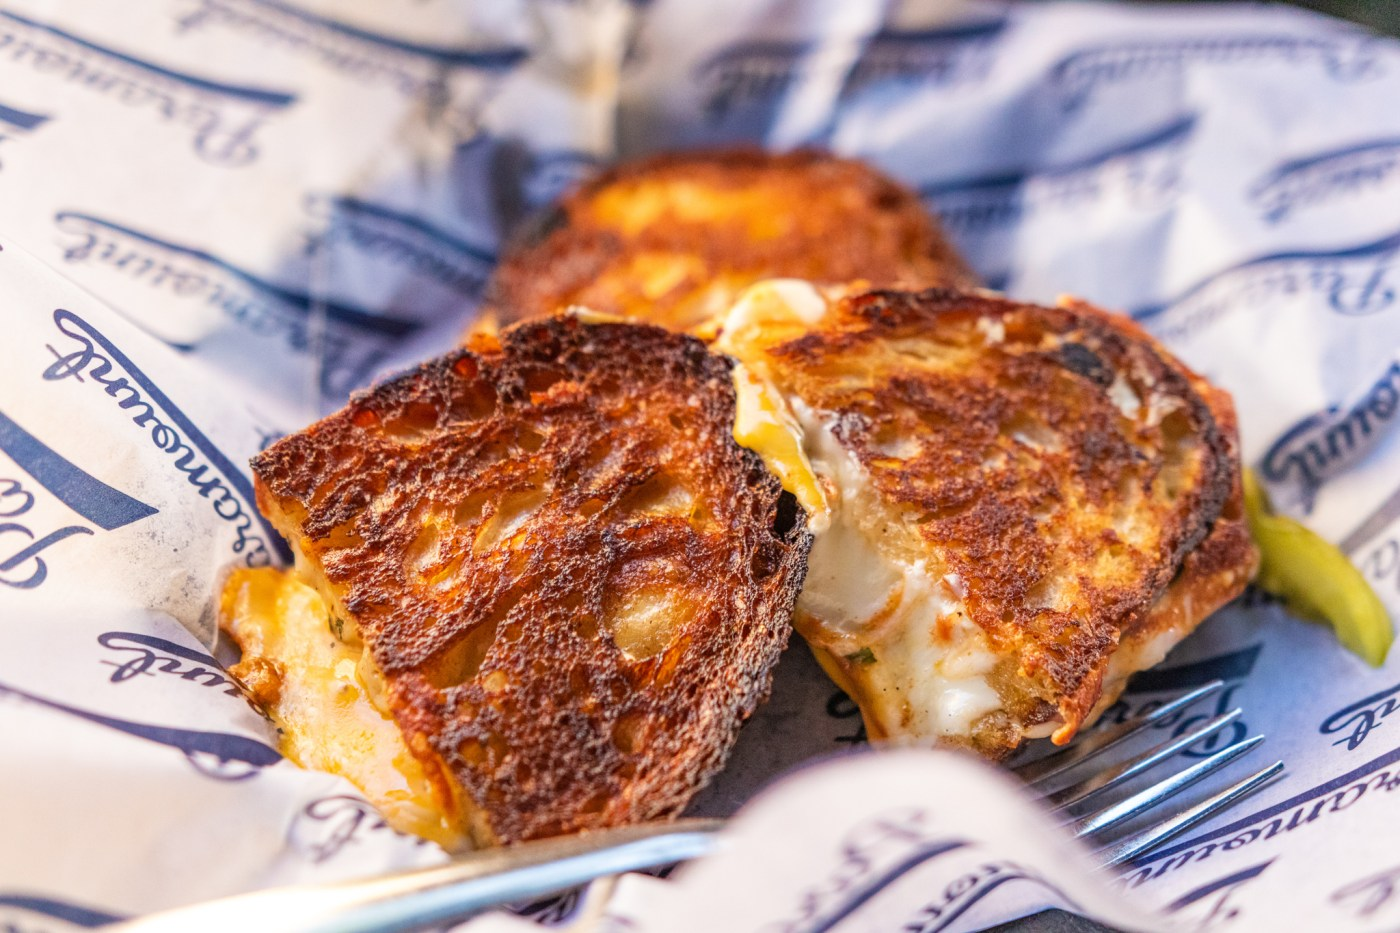 Paramount grilled cheese